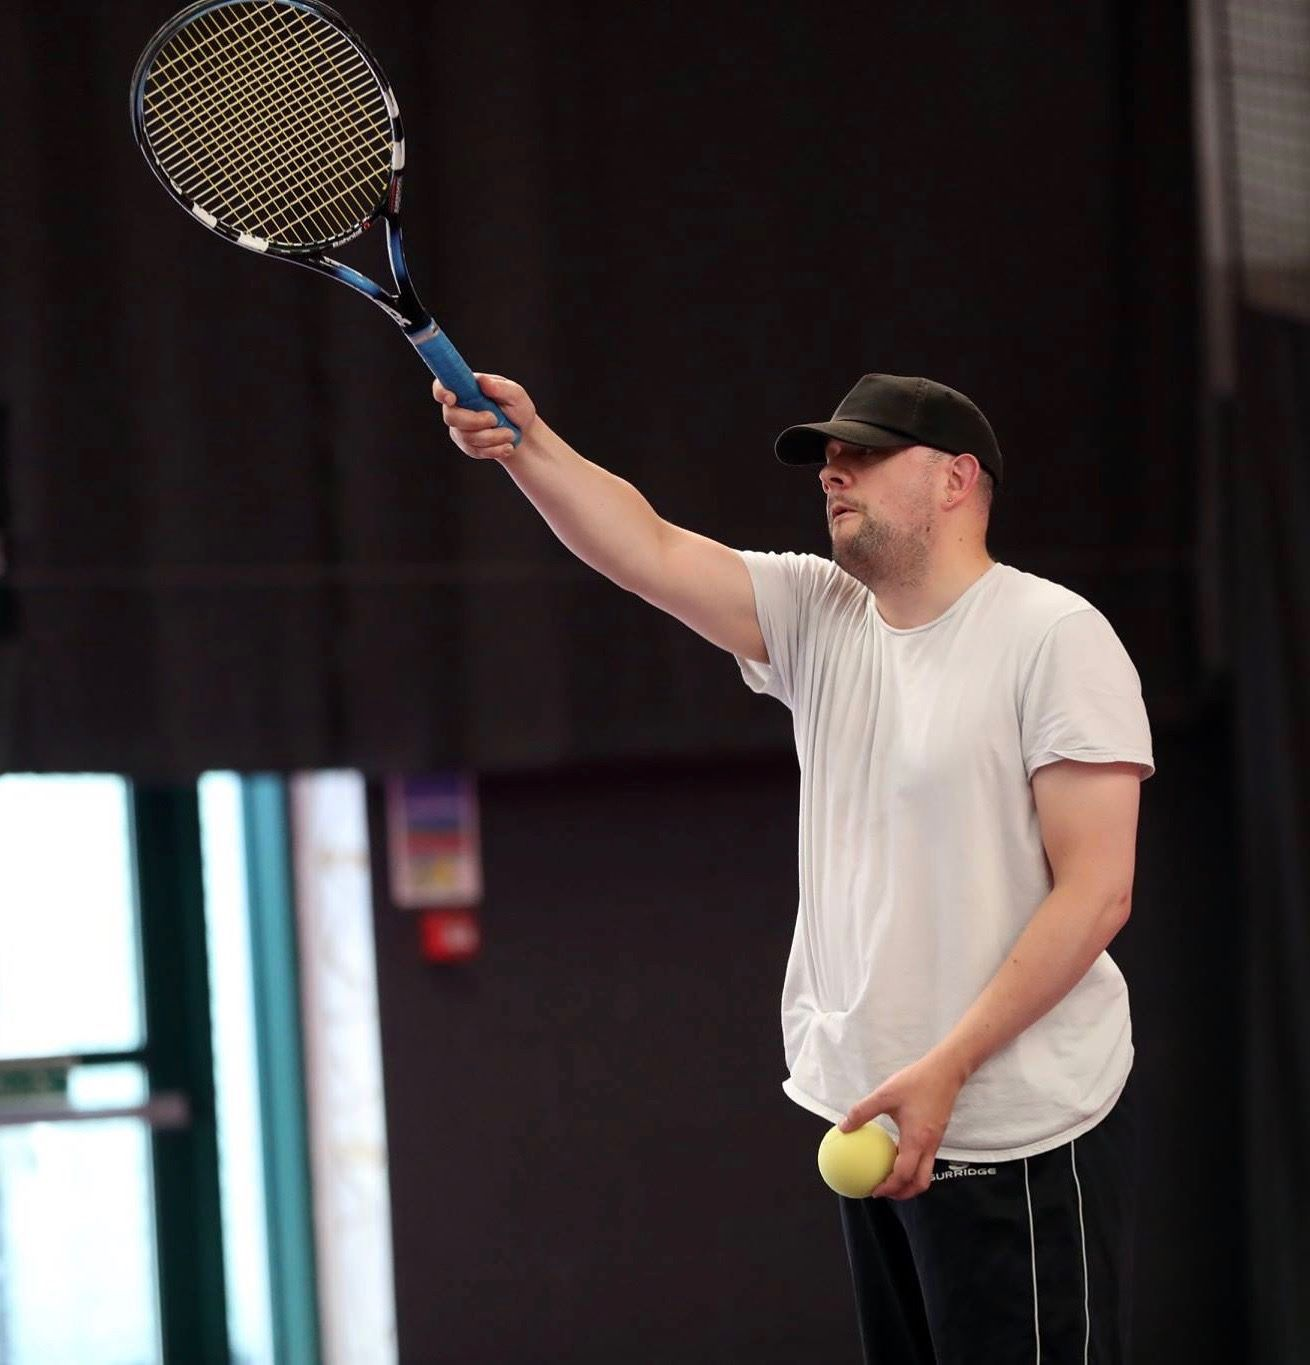 A man playing tennis with a racket and an adapted ball.